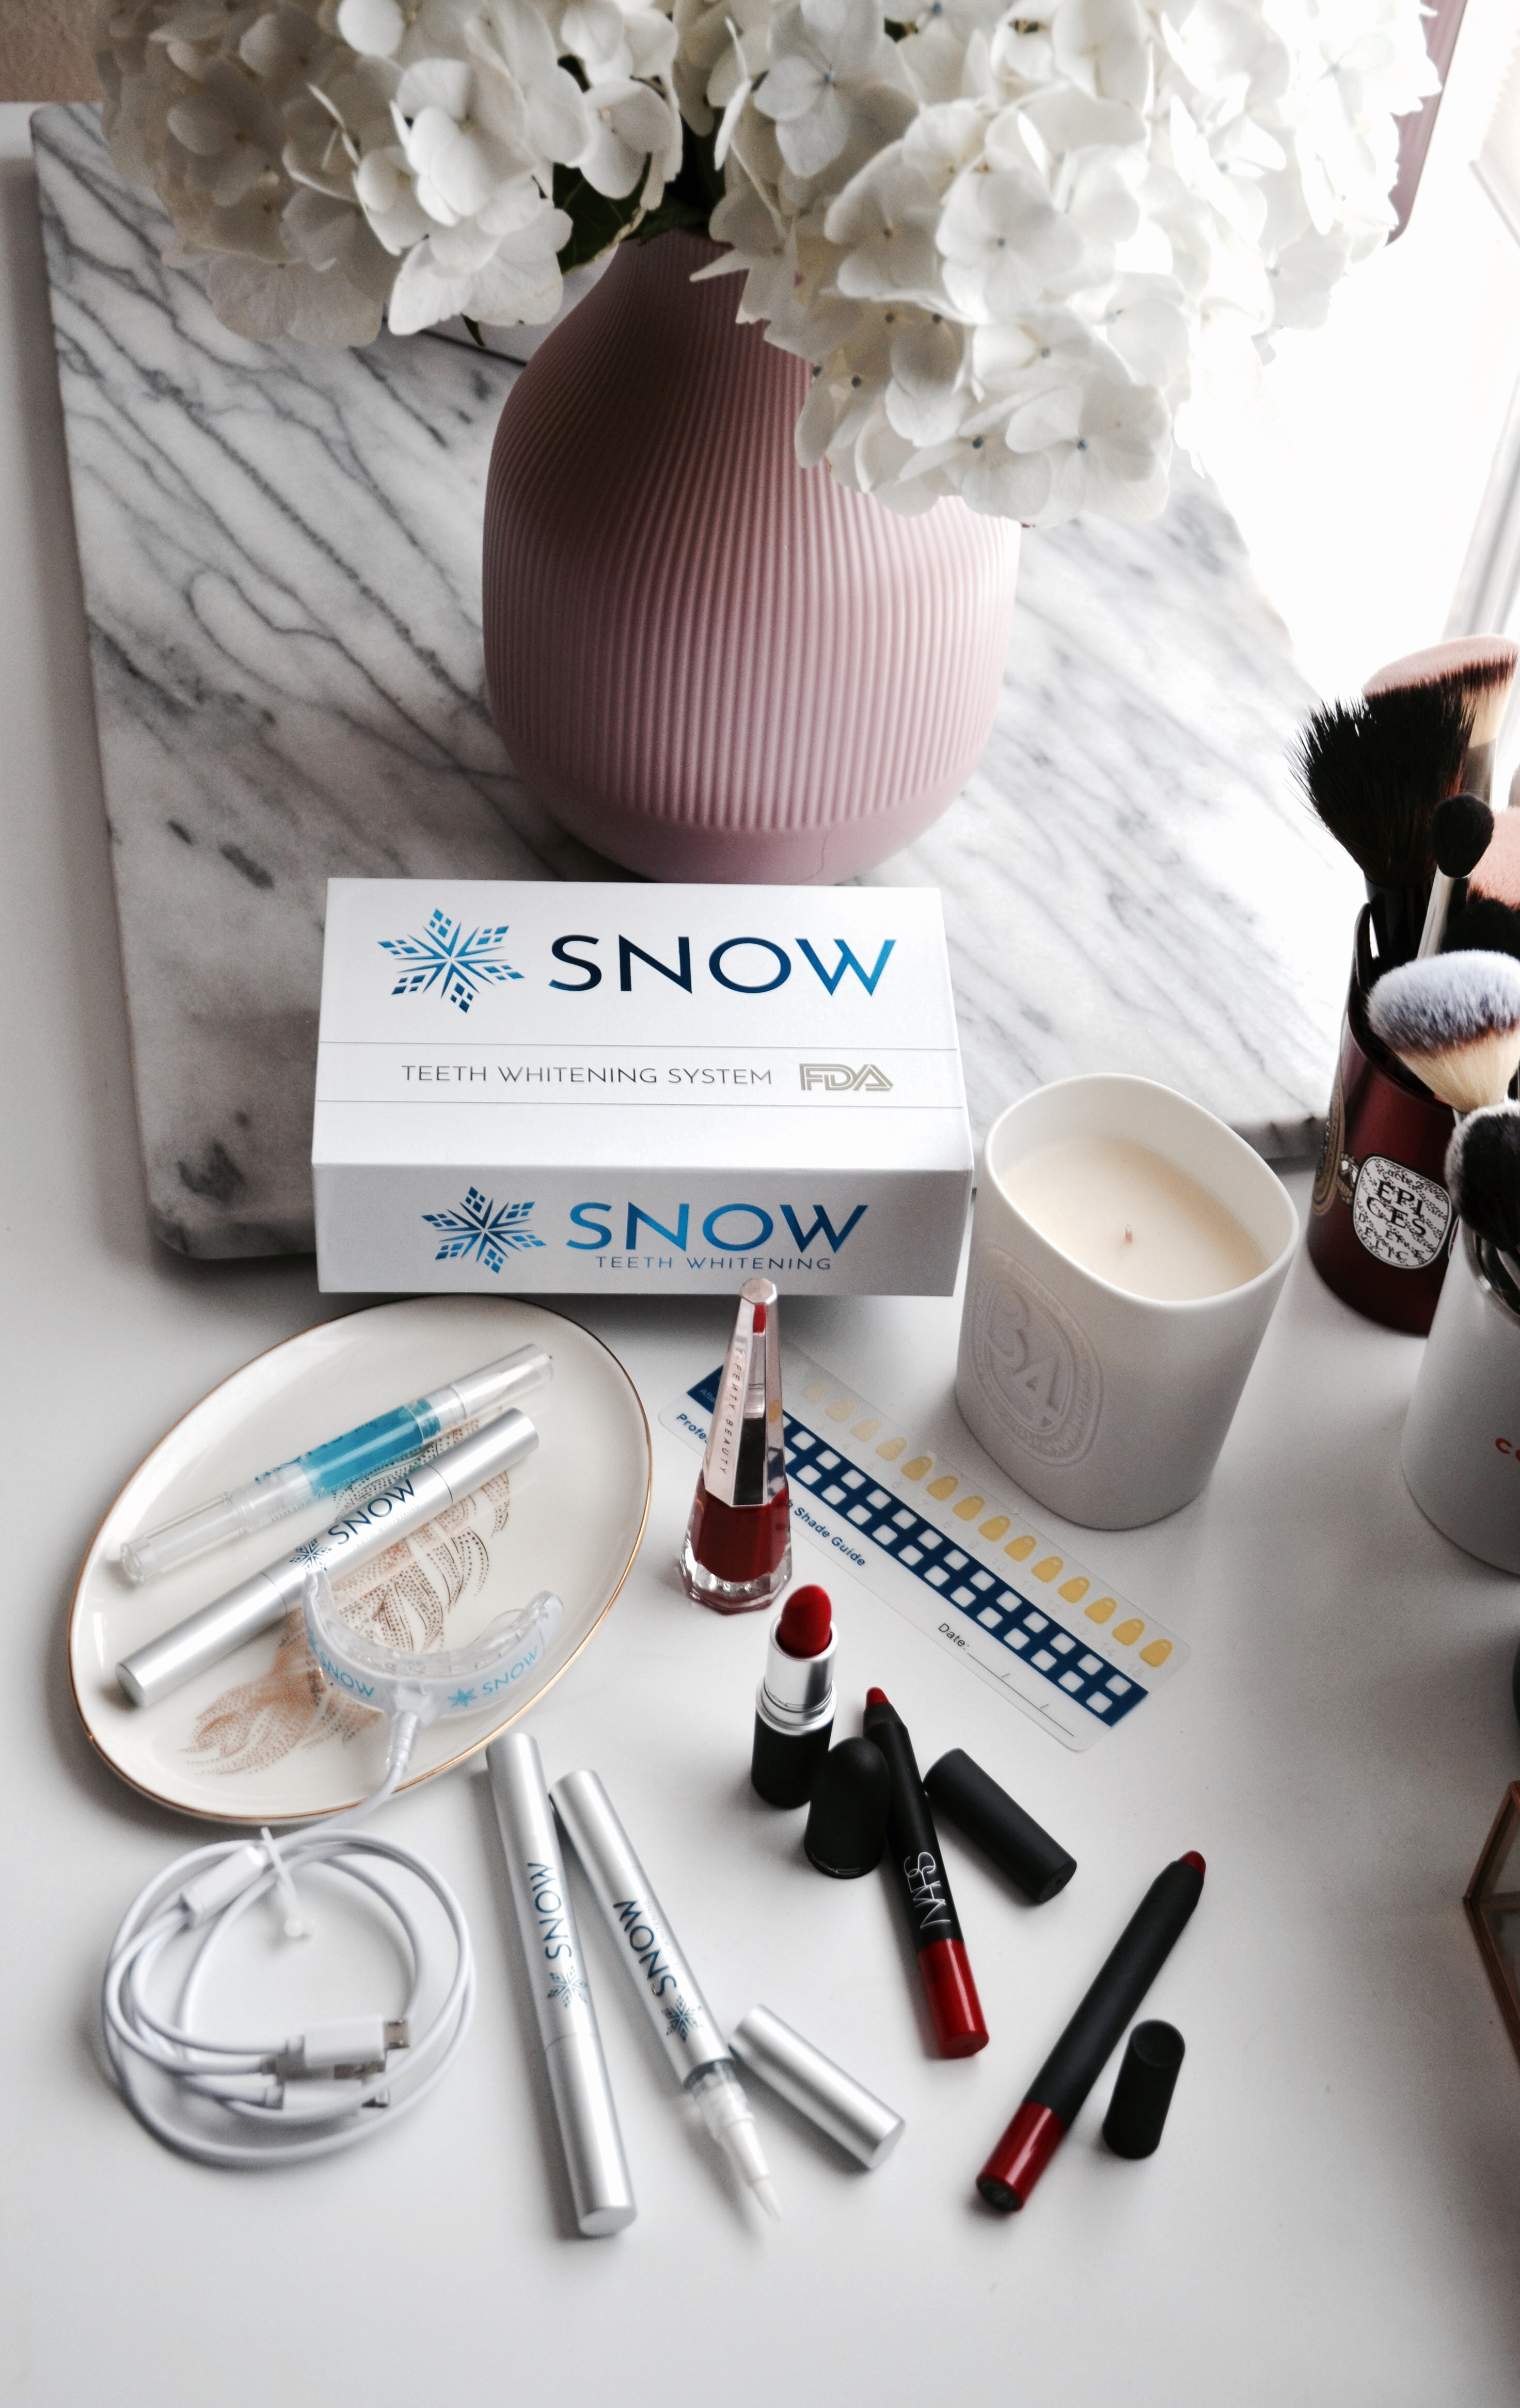 20 Percent Off Online Voucher Code Snow Teeth Whitening